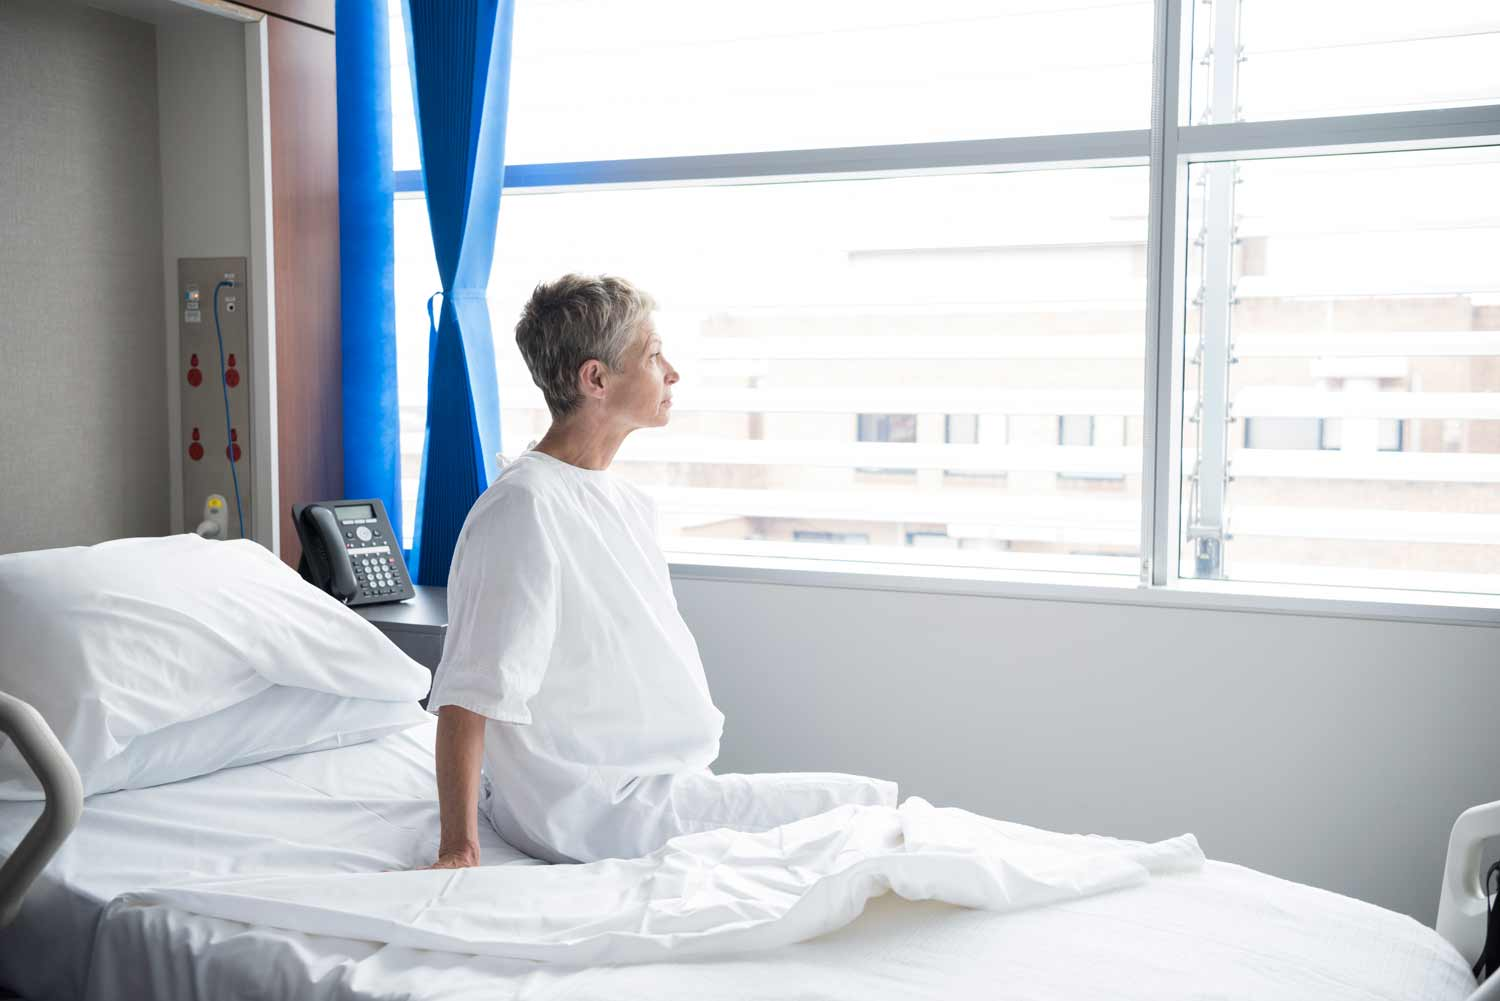 When is the best time to plan cosmetic procedures? - Image showing a woman sitting in a hospital bed looking out of the window